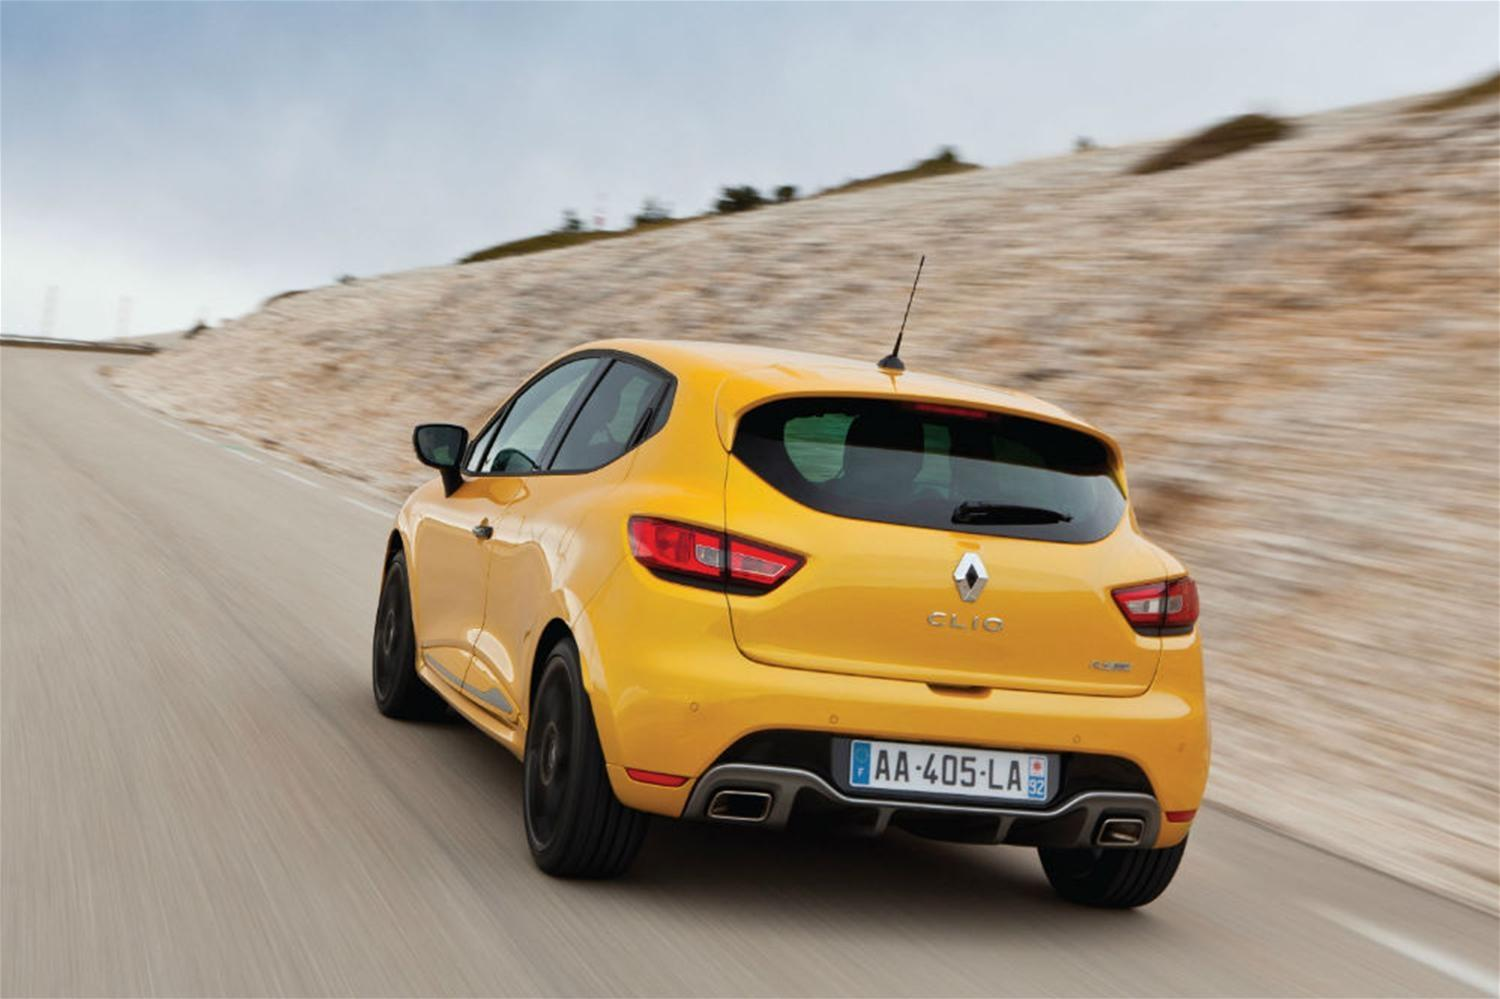 Extensive Details Published for the Renaultsport Clio 200 Turbo